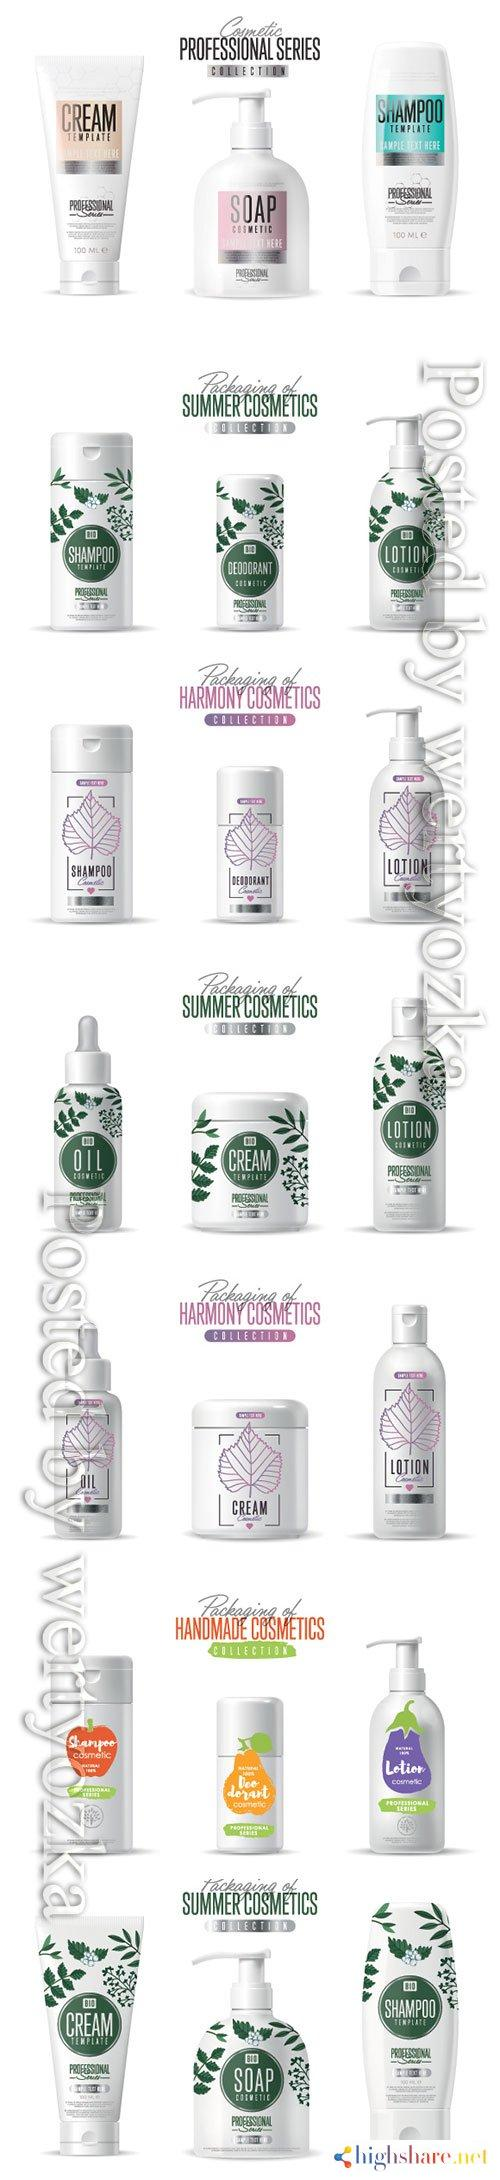 organic cosmetic brand vector packaging template 5f3ffd0921d48 - Organic cosmetic brand vector packaging template